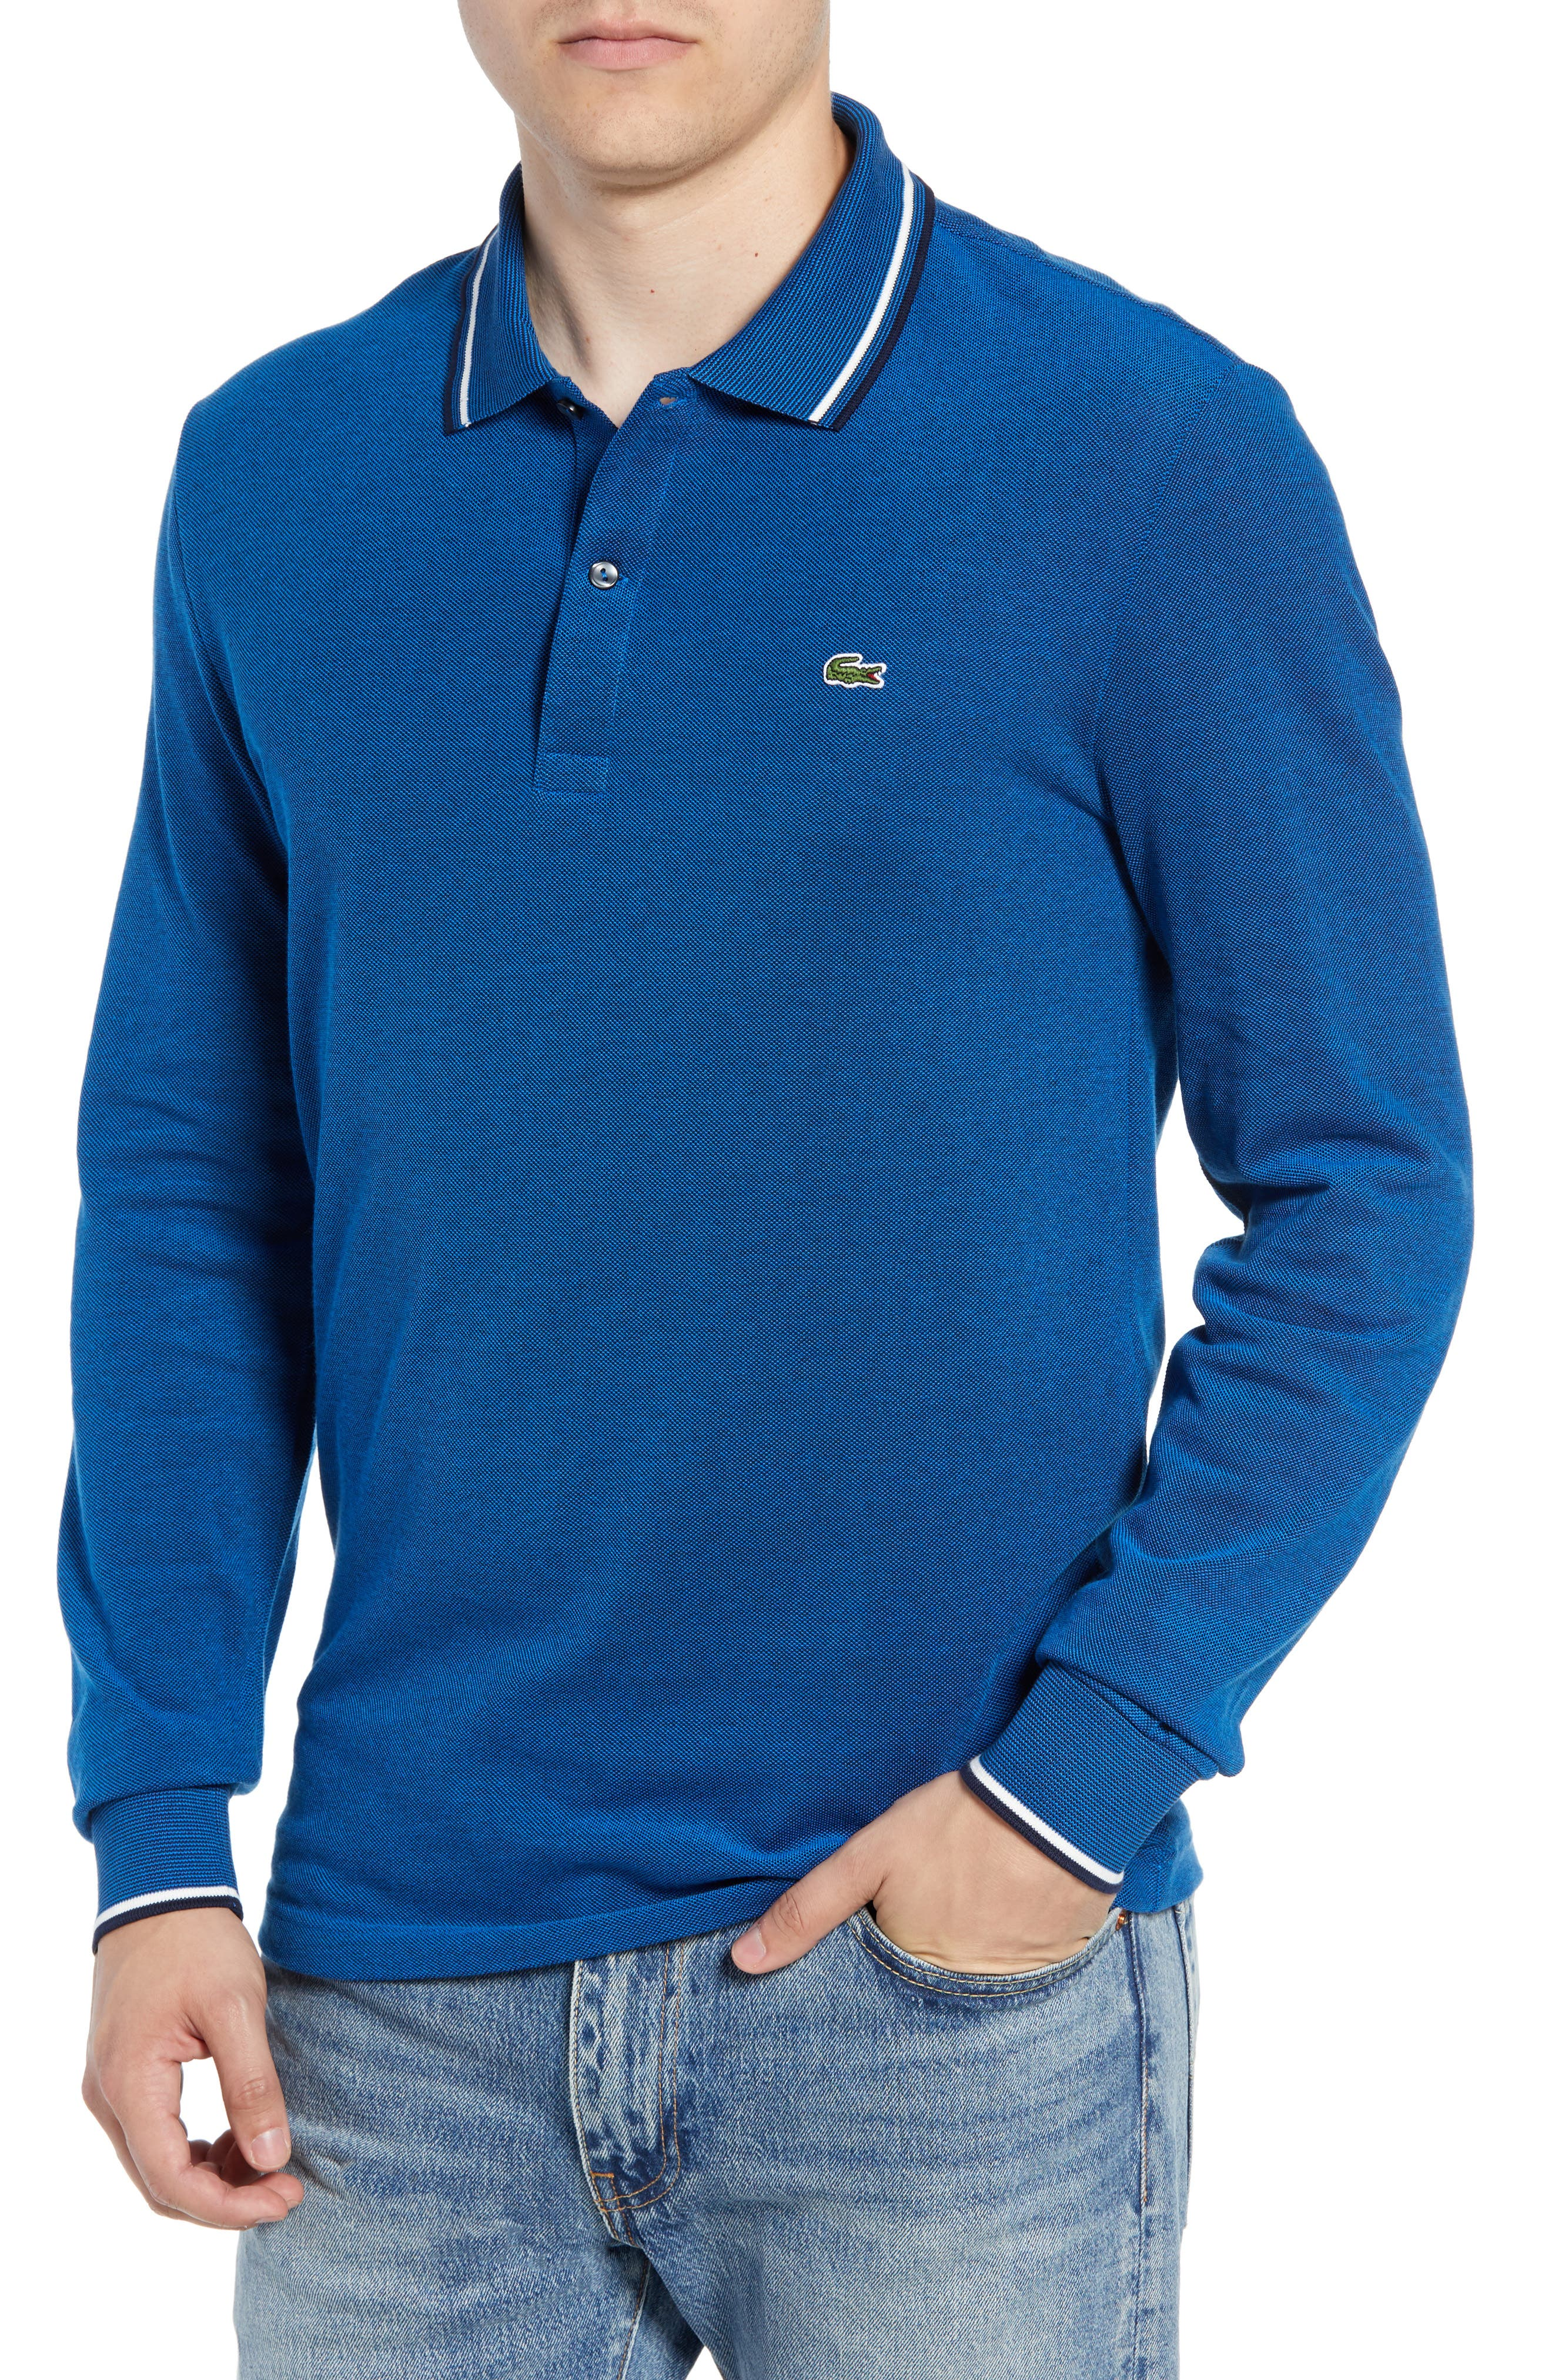 cd95177c335a4 Lacoste Slim Fit Long Sleeve Pique Polo In Blue Royal  Dark Navy Blue